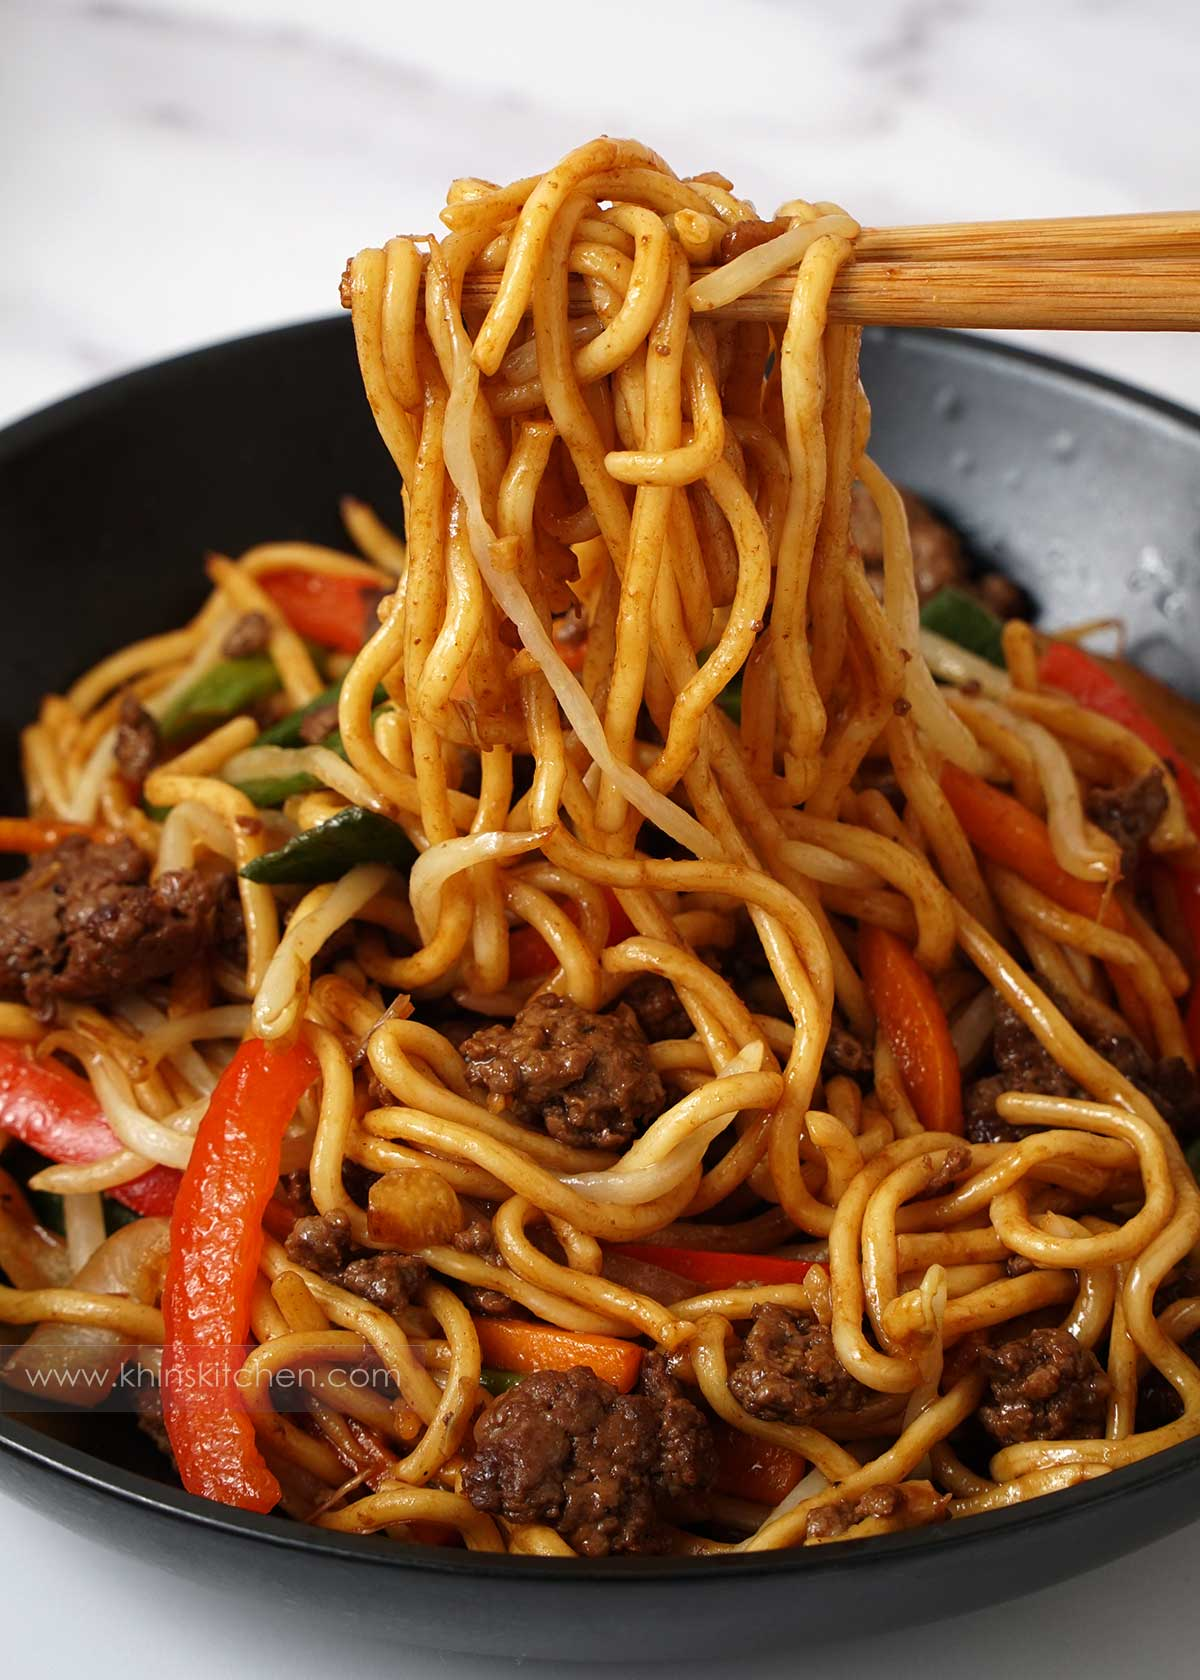 Picking up stir fry noodles with chopstick from the black bowl.